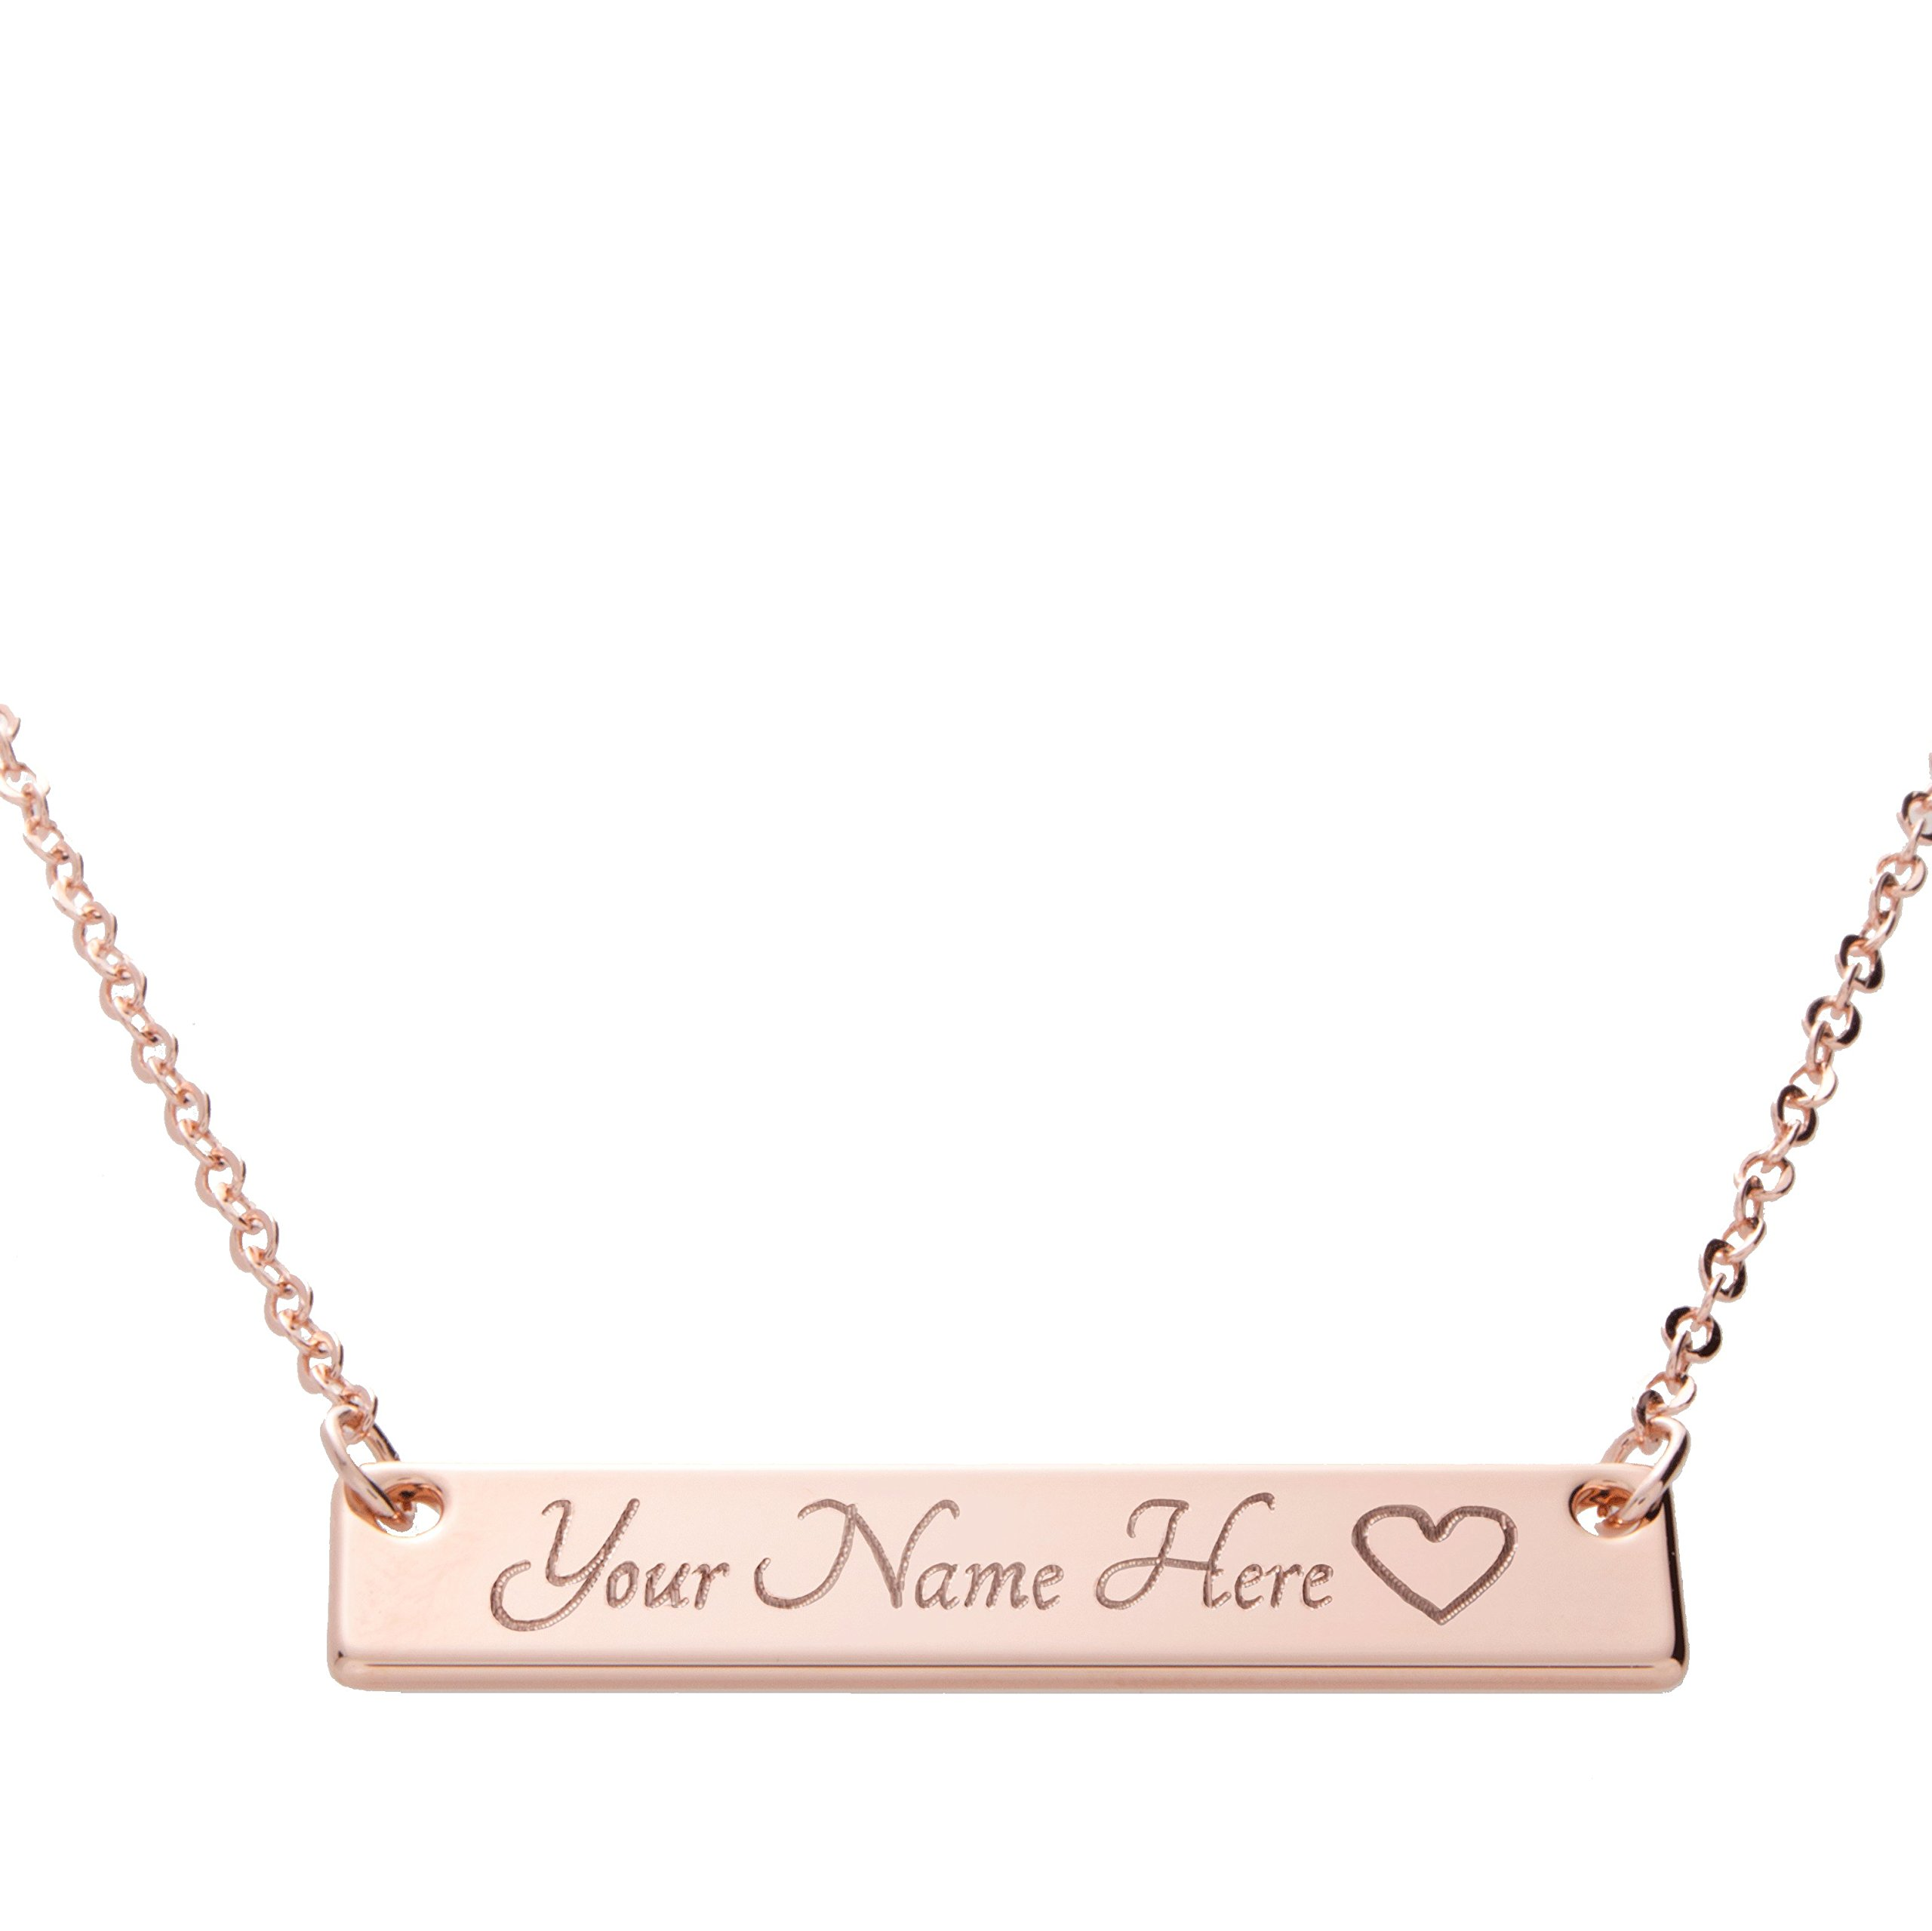 i1it SAME DAY SHIPPING GIFT TIL 2PM CDT Customizable Your Name Bar Necklace Same Day Shipping Gift 16k Rose Gold -Plated Name Bar Necklace Machine Engraving Mothers day bridesmaid wedding